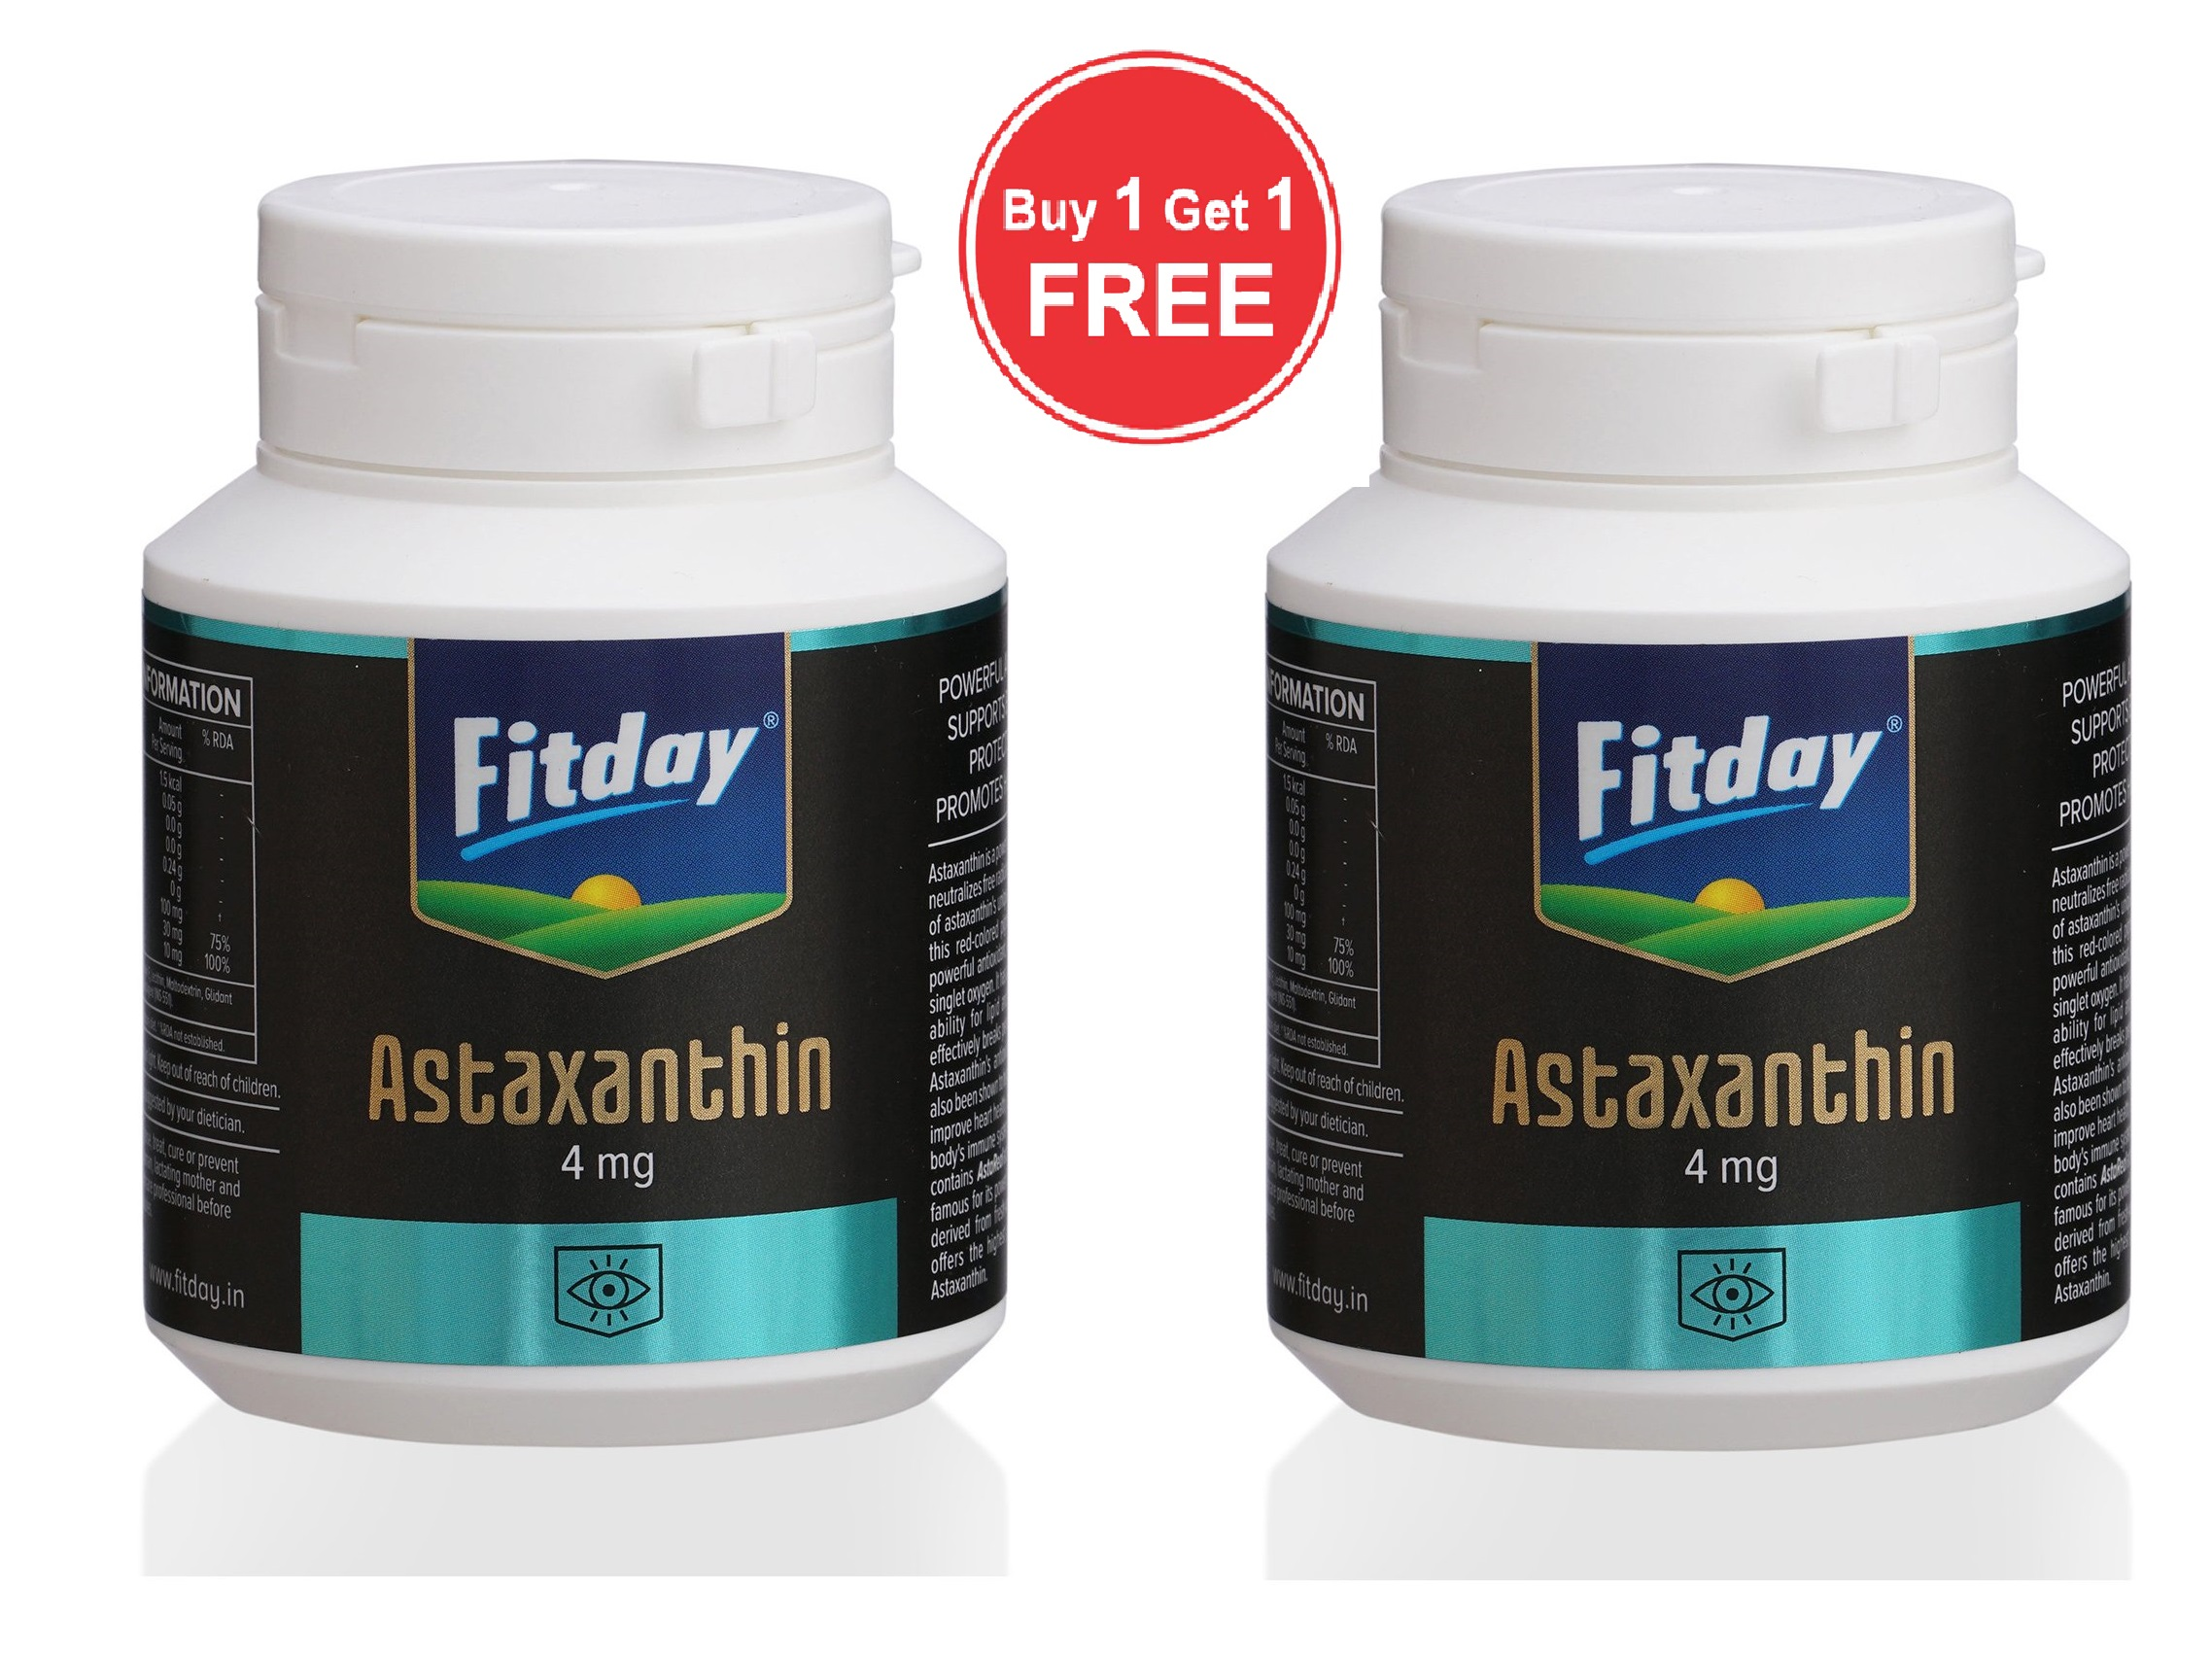 FITDAY Astaxanthin - 4 mg (60 Capsules) Buy 1 Get 1 Free